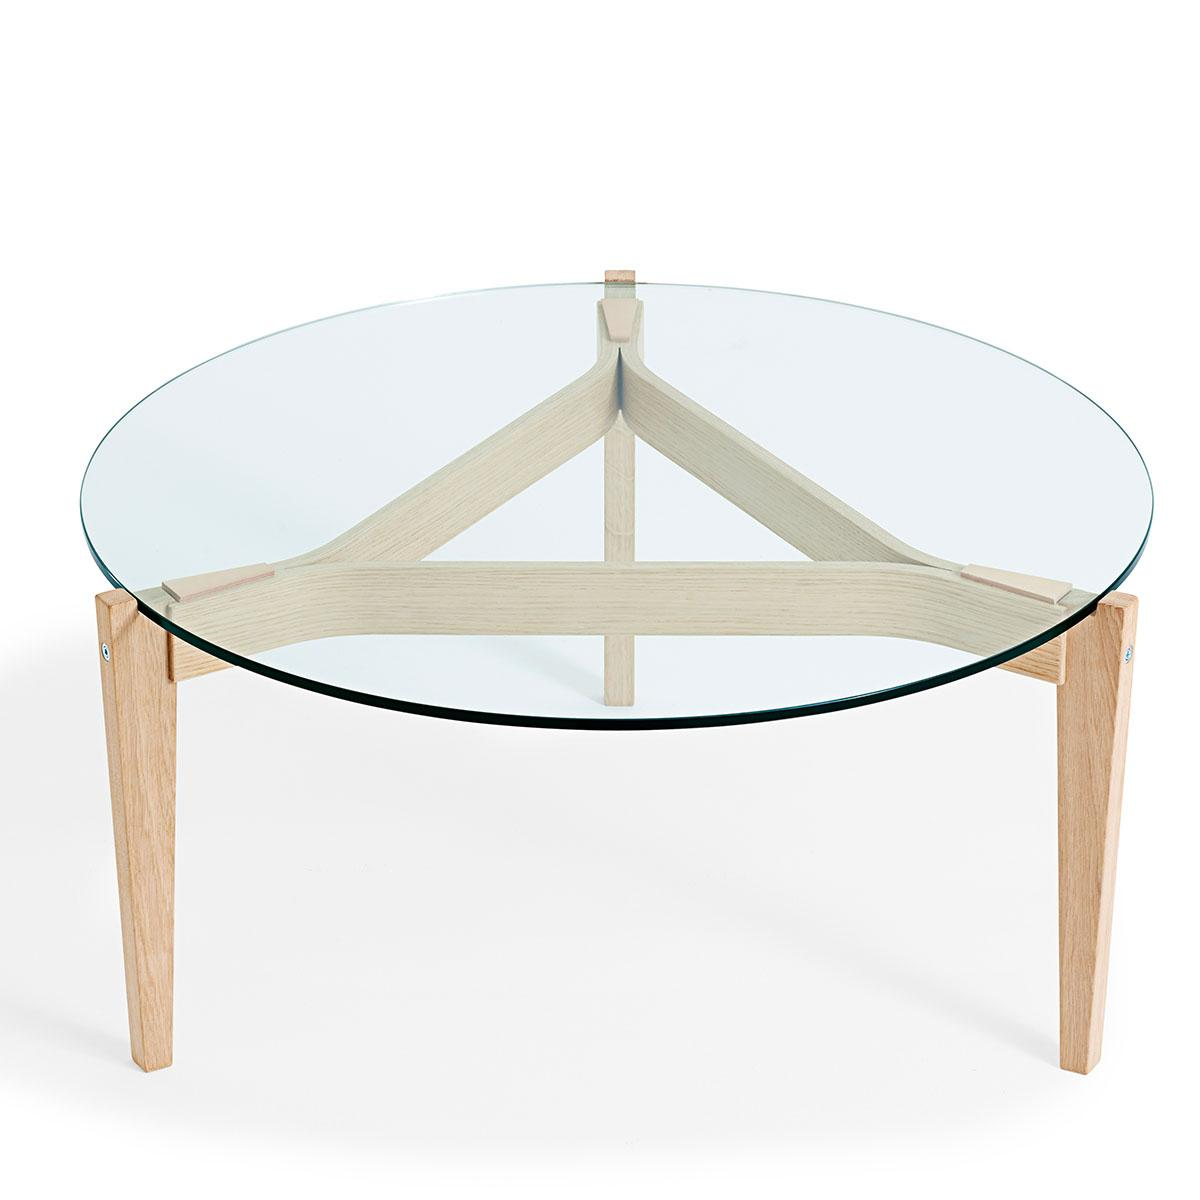 Getama 465 Coffee table _1200_0000_getama_065